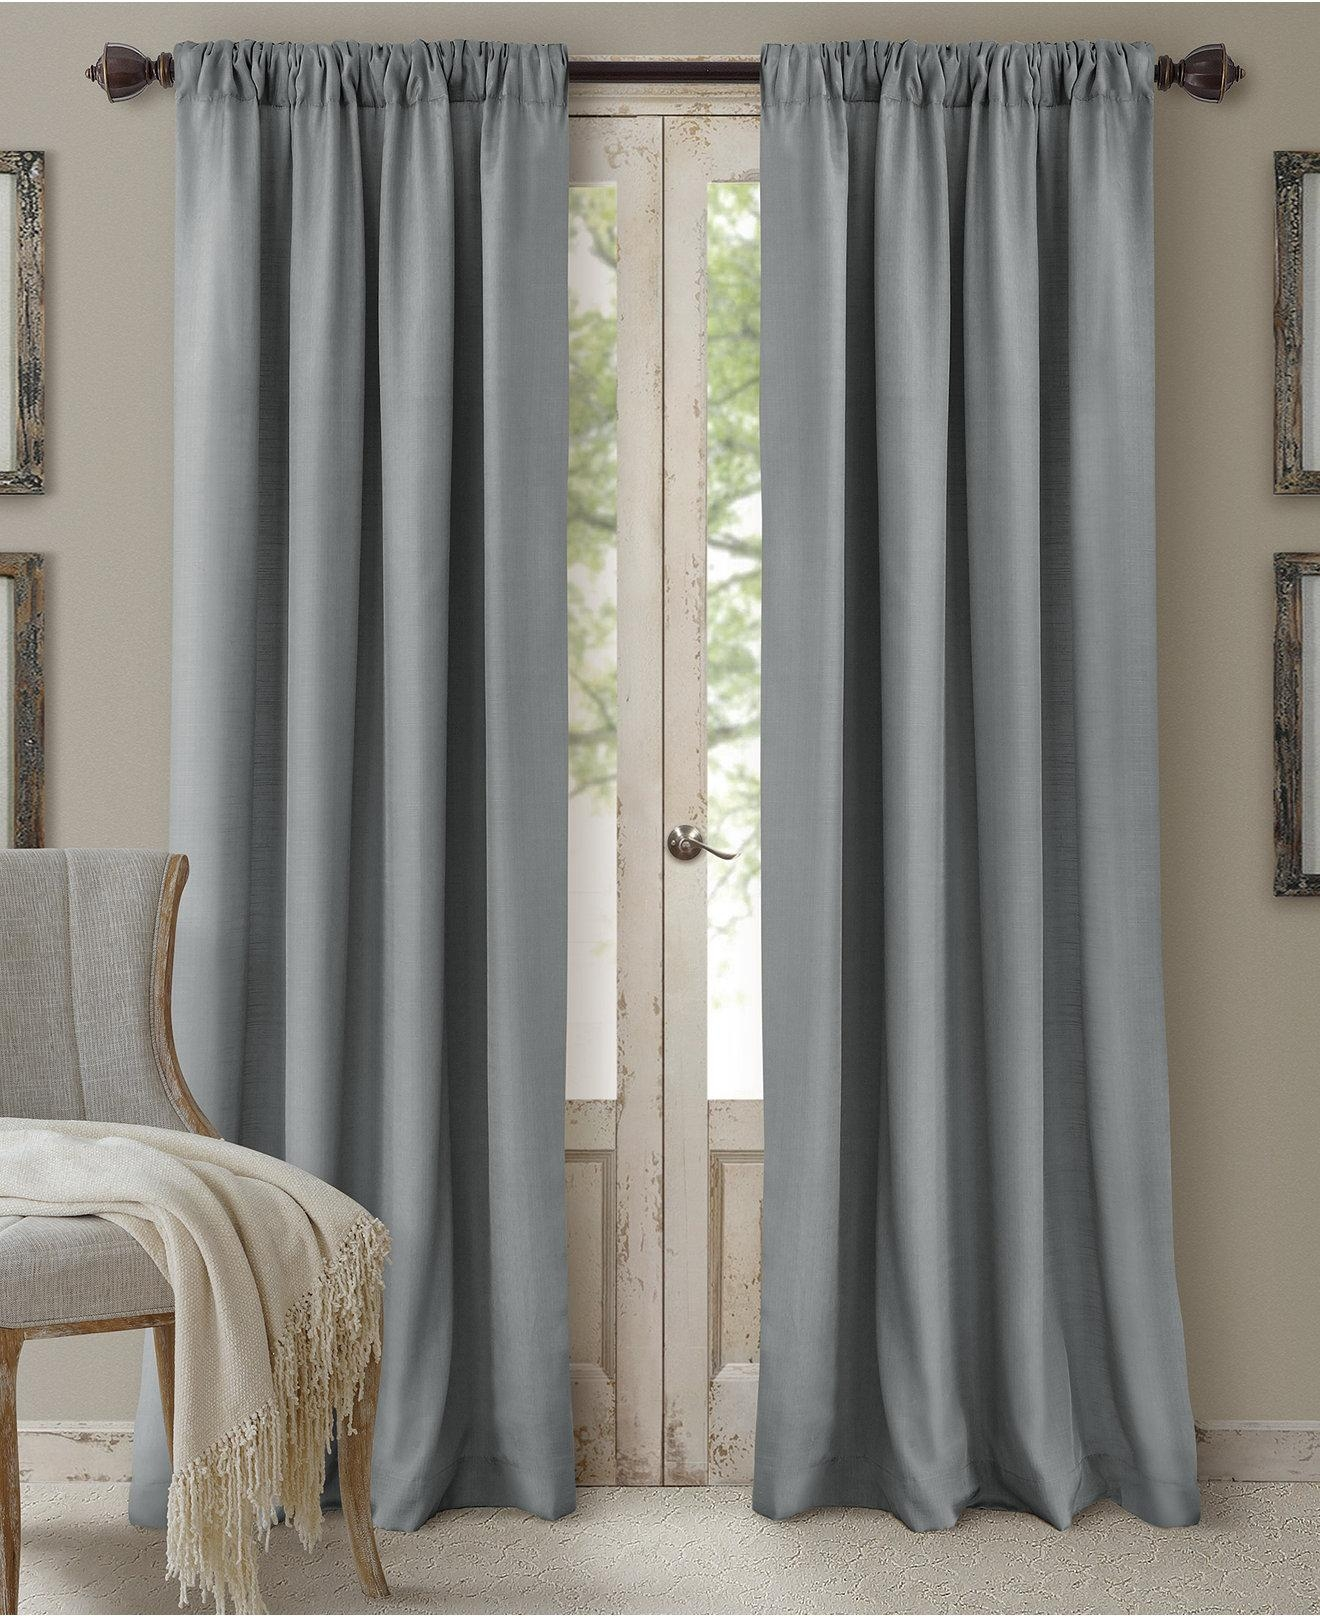 Decor: Grey Macys Curtains Design Ideas With Wall Art Plus Wooden For Macys Wall Art (View 15 of 20)